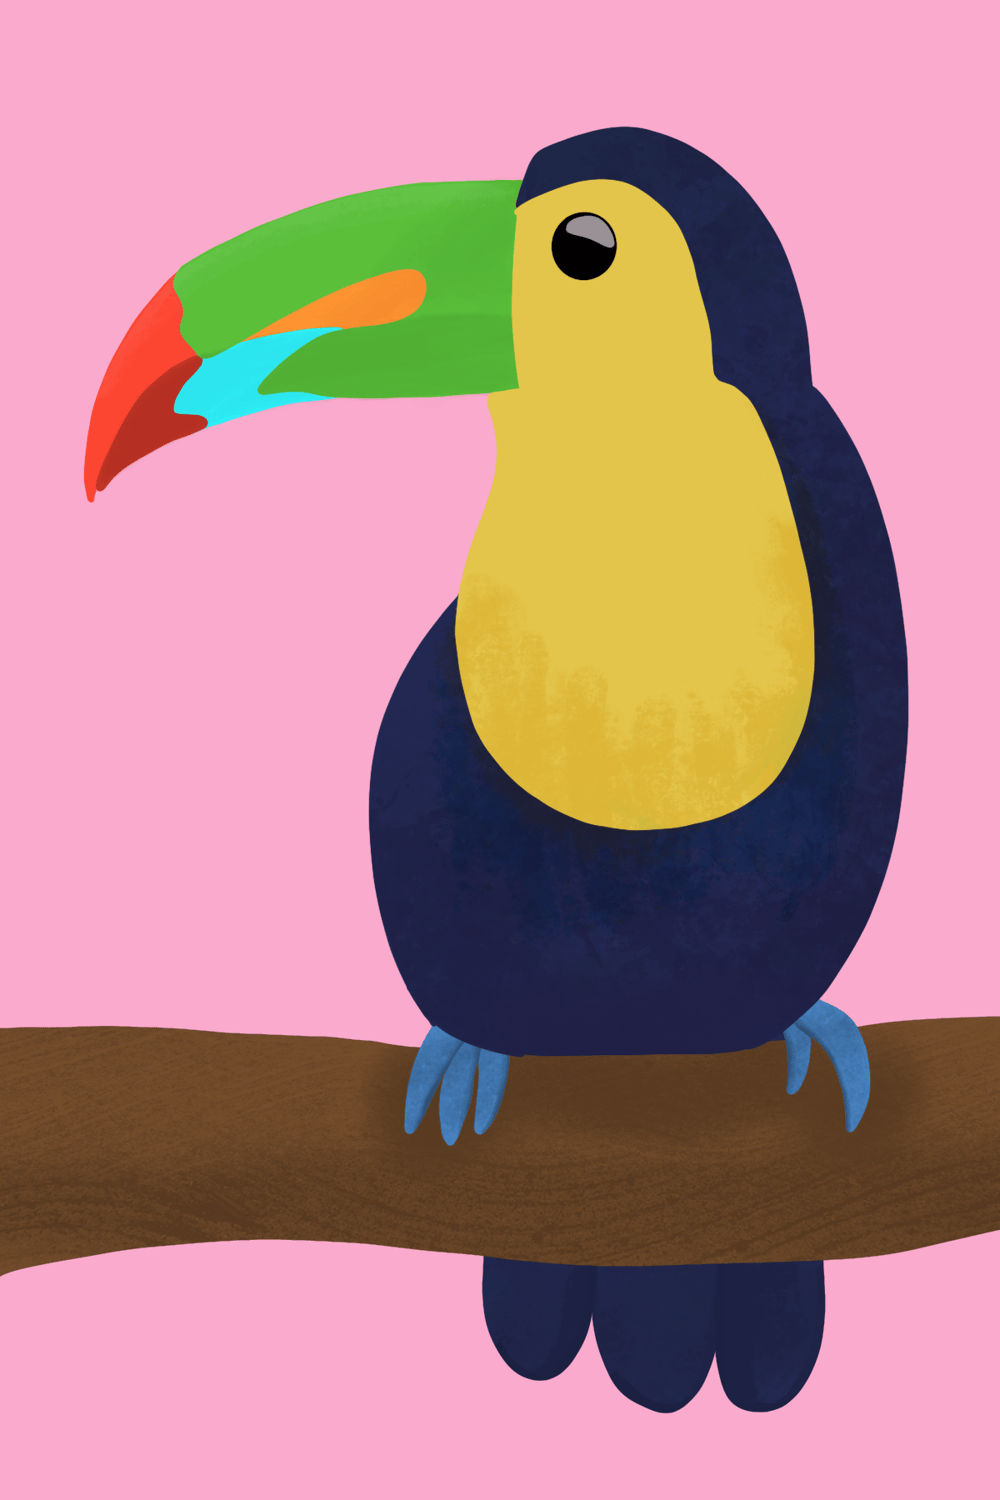 Upside Down & Toucan - image 3 - student project